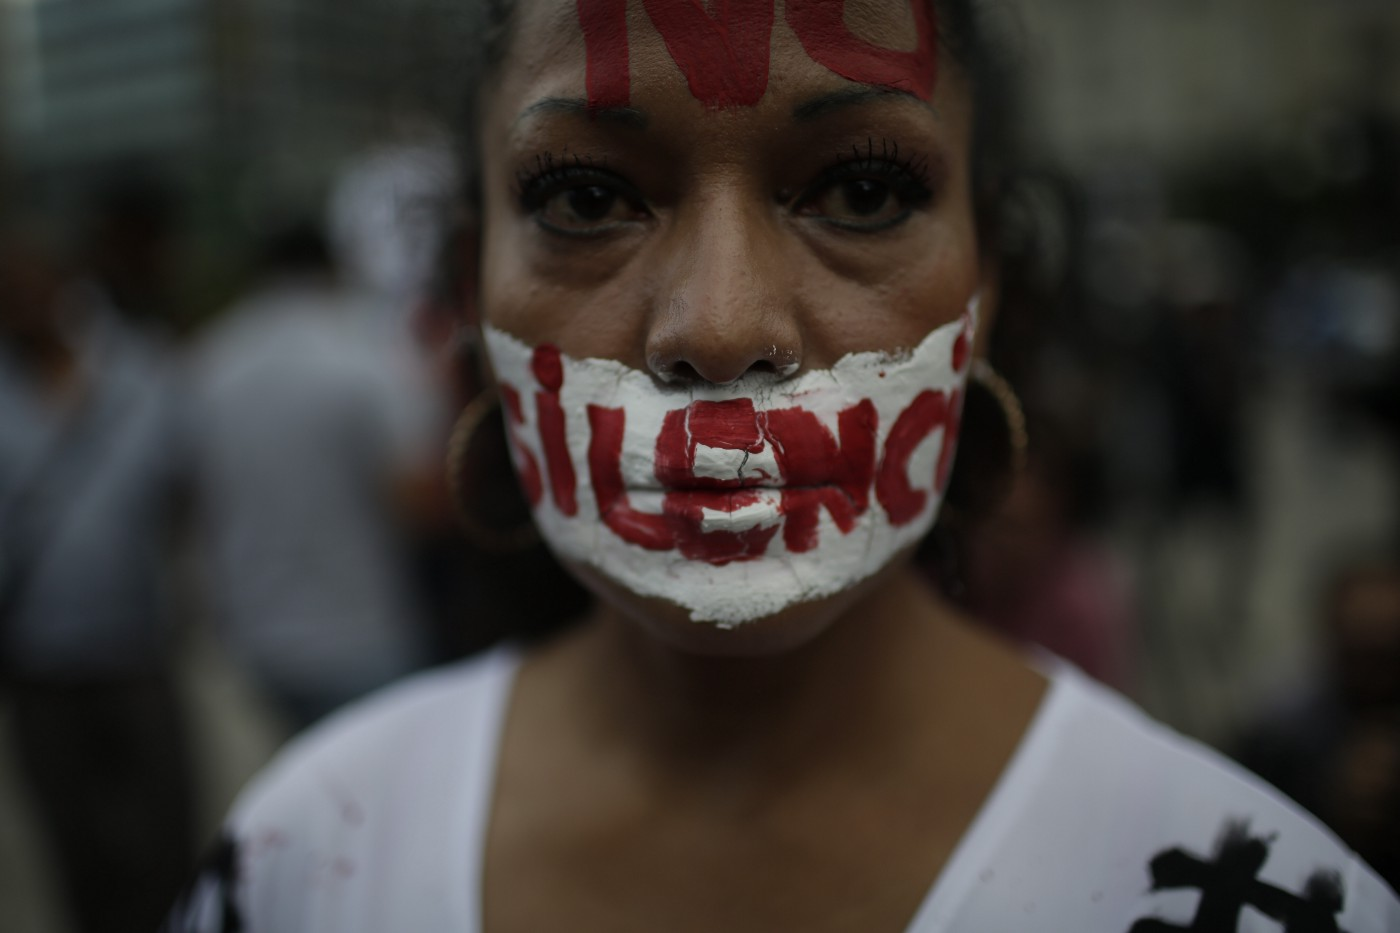 A woman with writing on her face that reads 'no to silence' looks at the camera during a demonstration in Mexico.